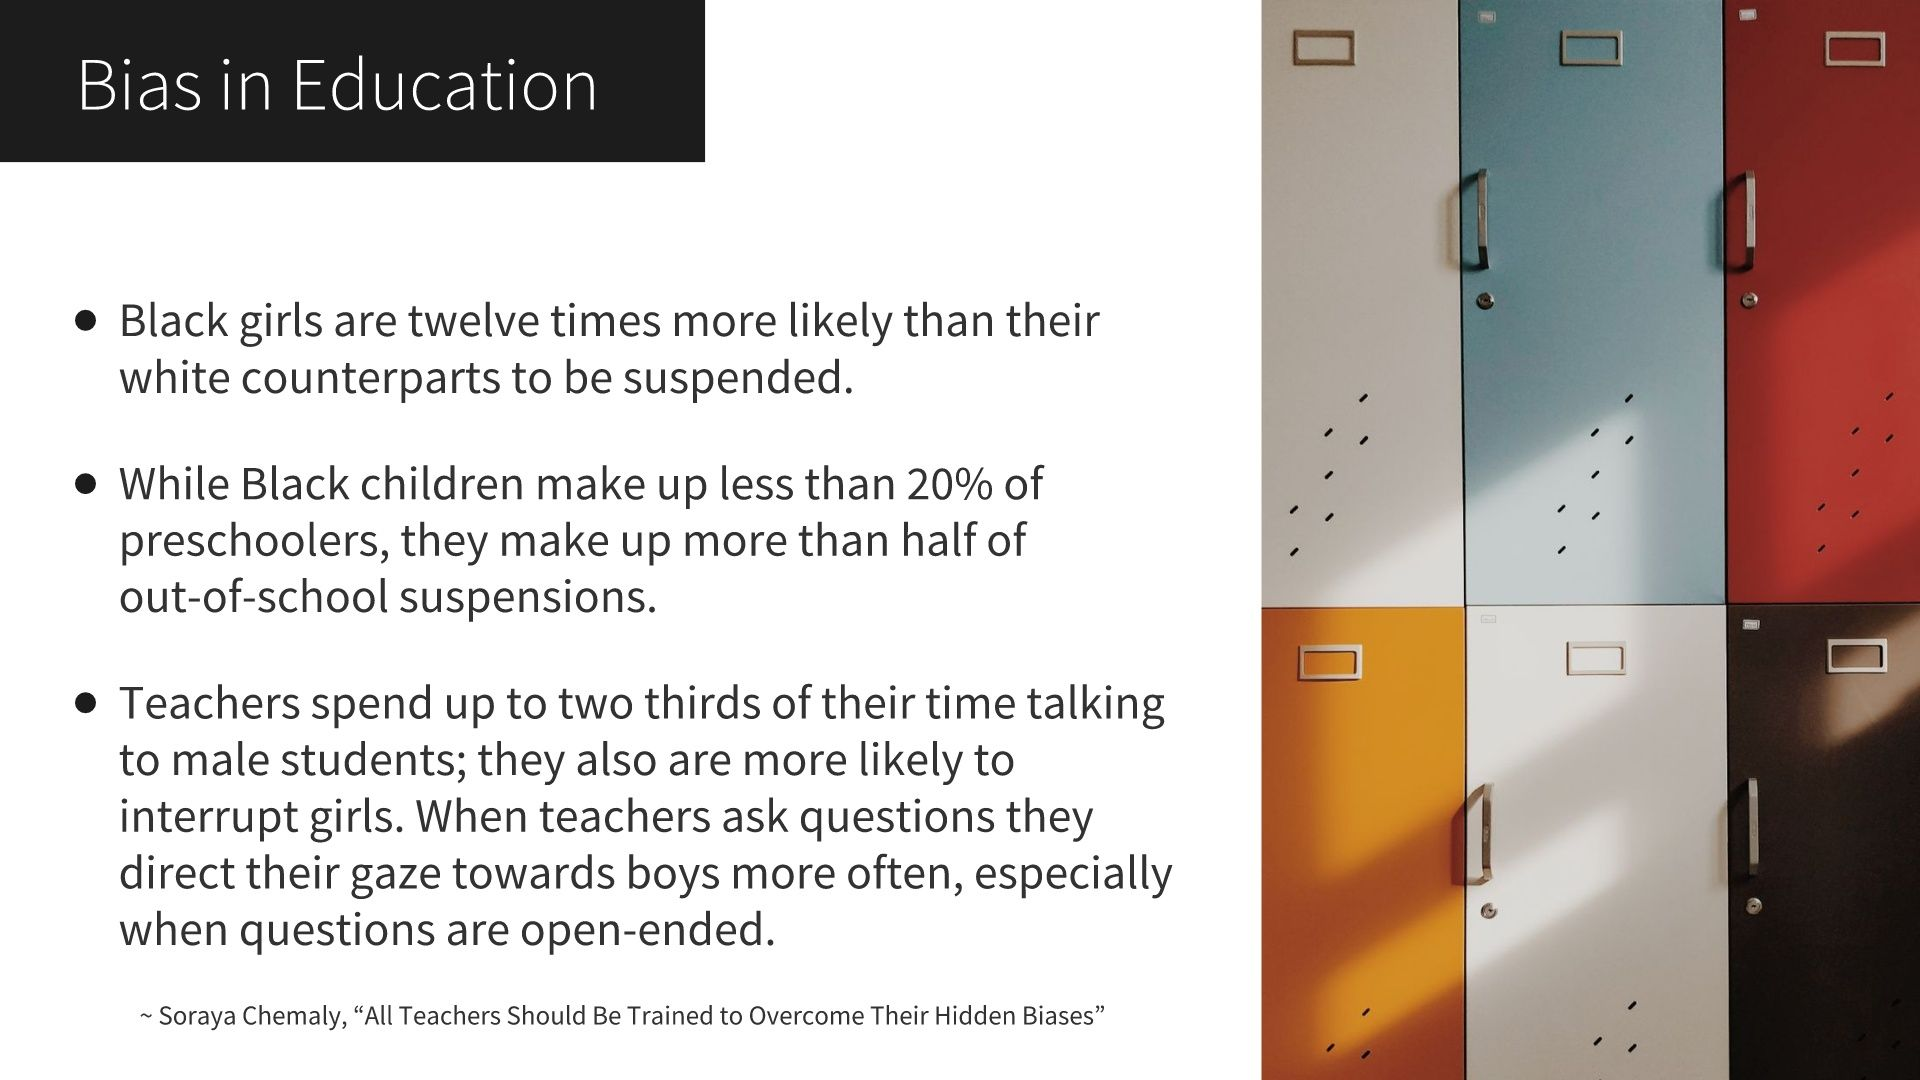 """Data from Soraya Chemaly's """"All Teachers Should Be Trained to Overcome Their Hidden Biases. Text below."""